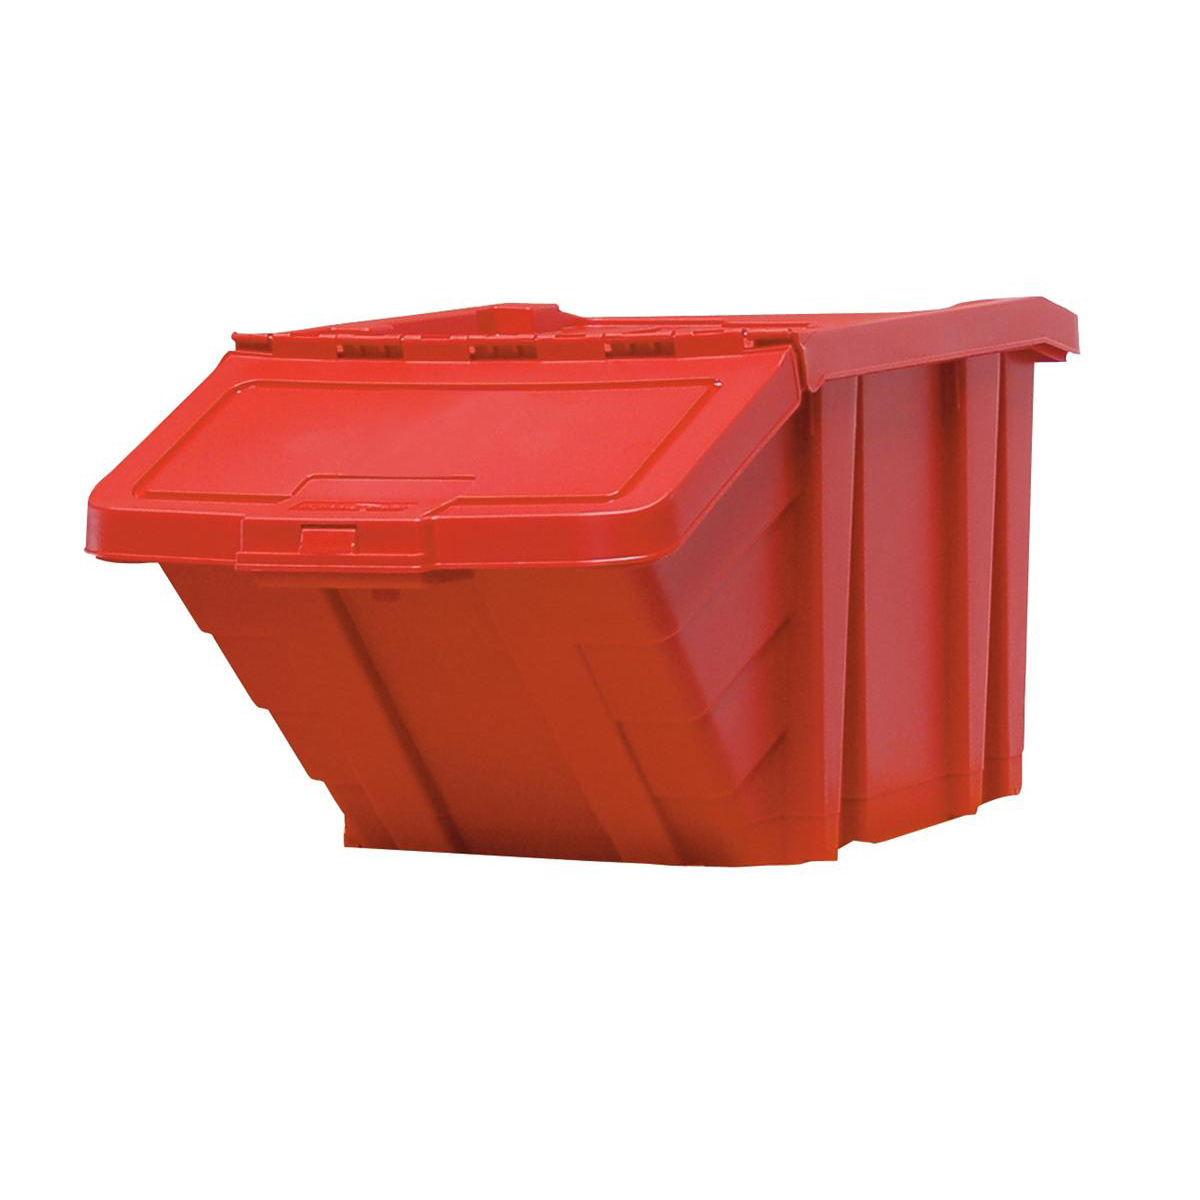 Recycle Storage Bin and Lid Red 400x635x345mm